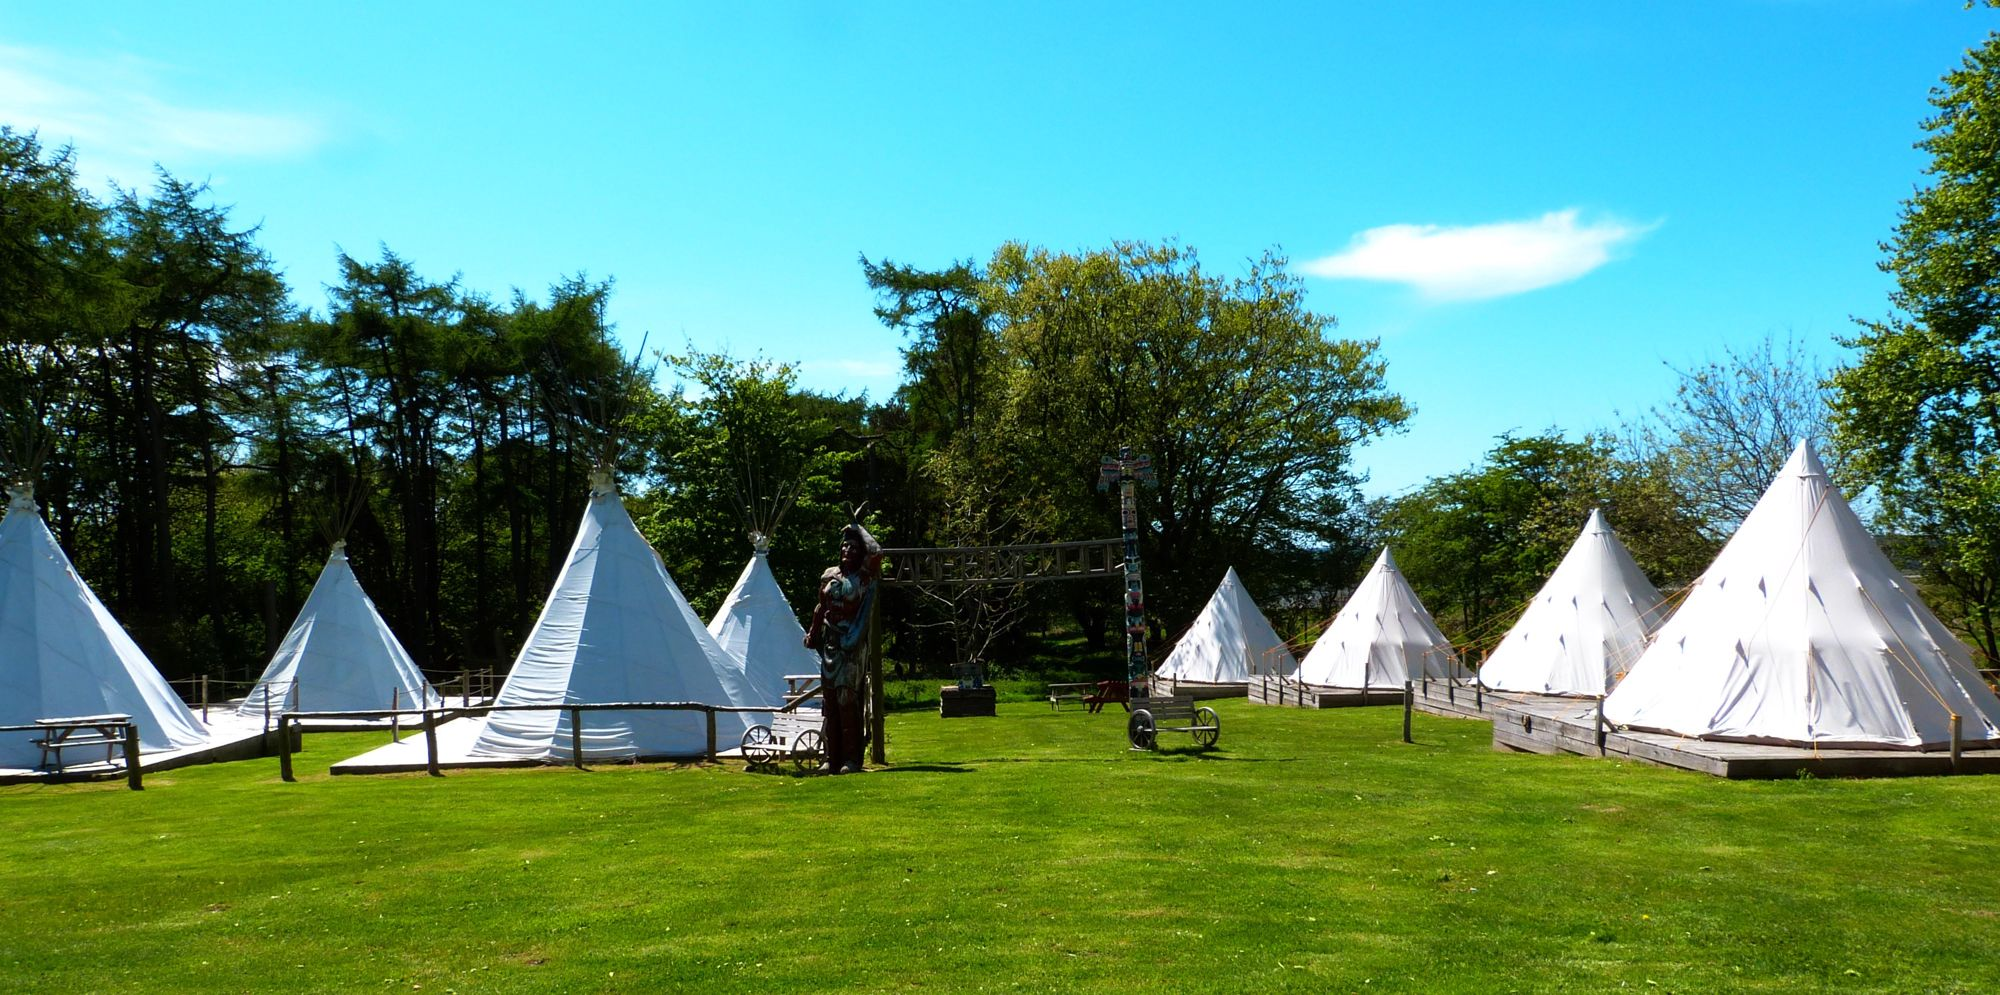 Pinewood Site view of Indian & modern Tipi tents